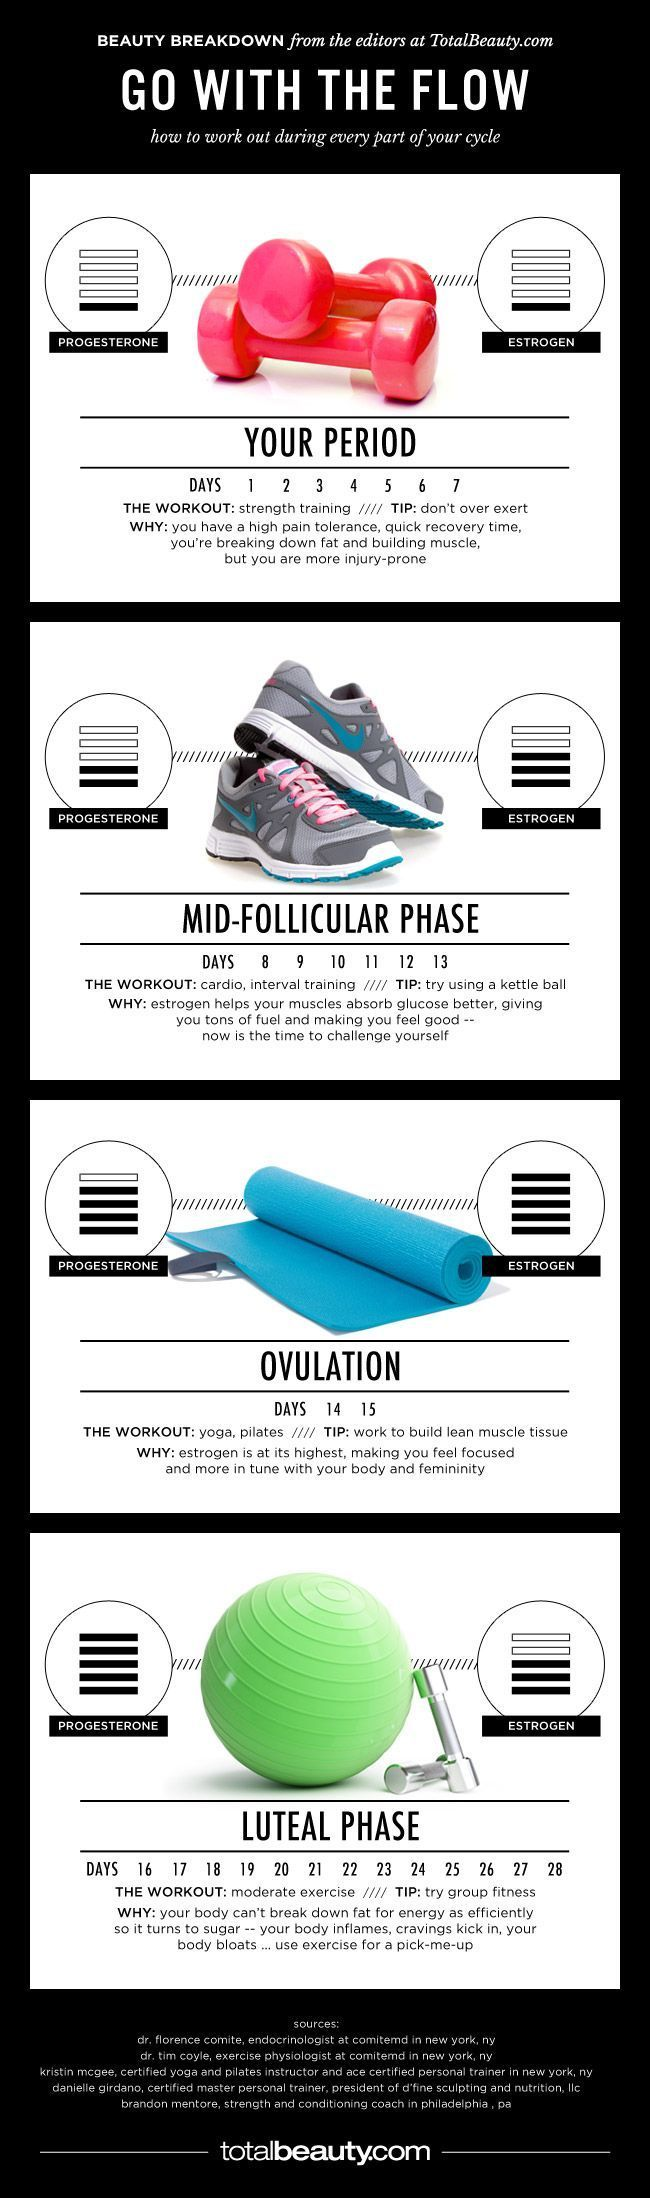 cool Your Monthly Flow Chart: Fitness For Every Part of Your Cycle